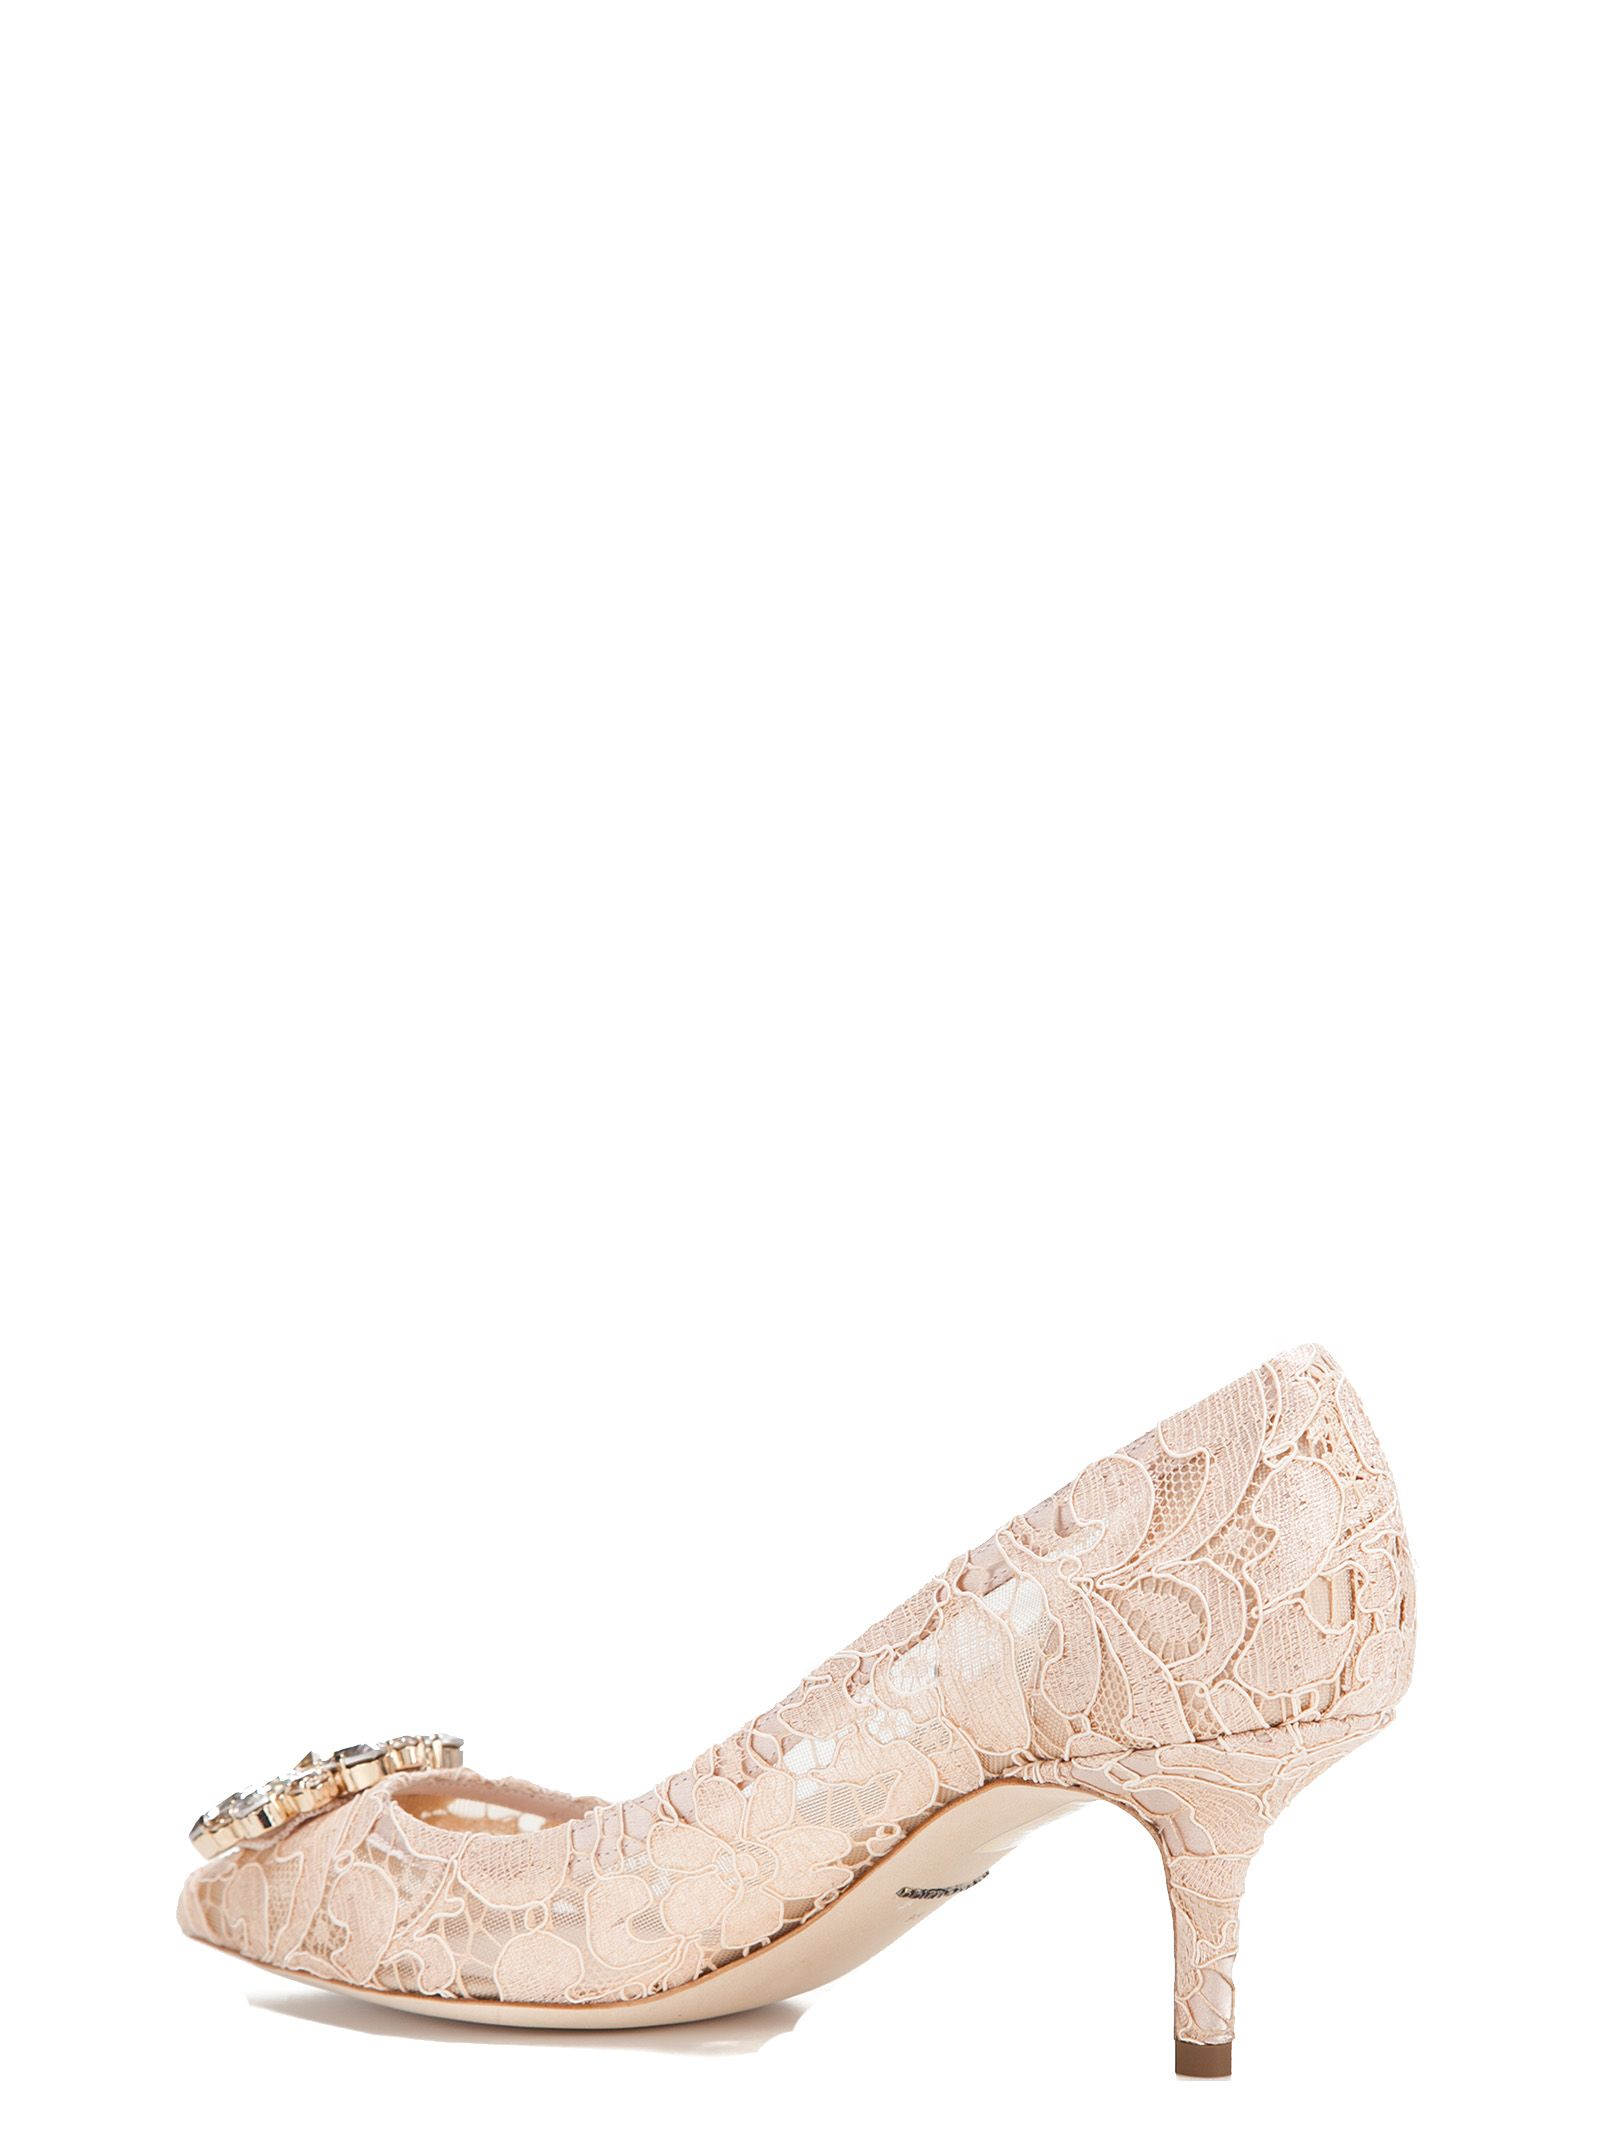 embroidered pumps - Nude & Neutrals Dolce & Gabbana